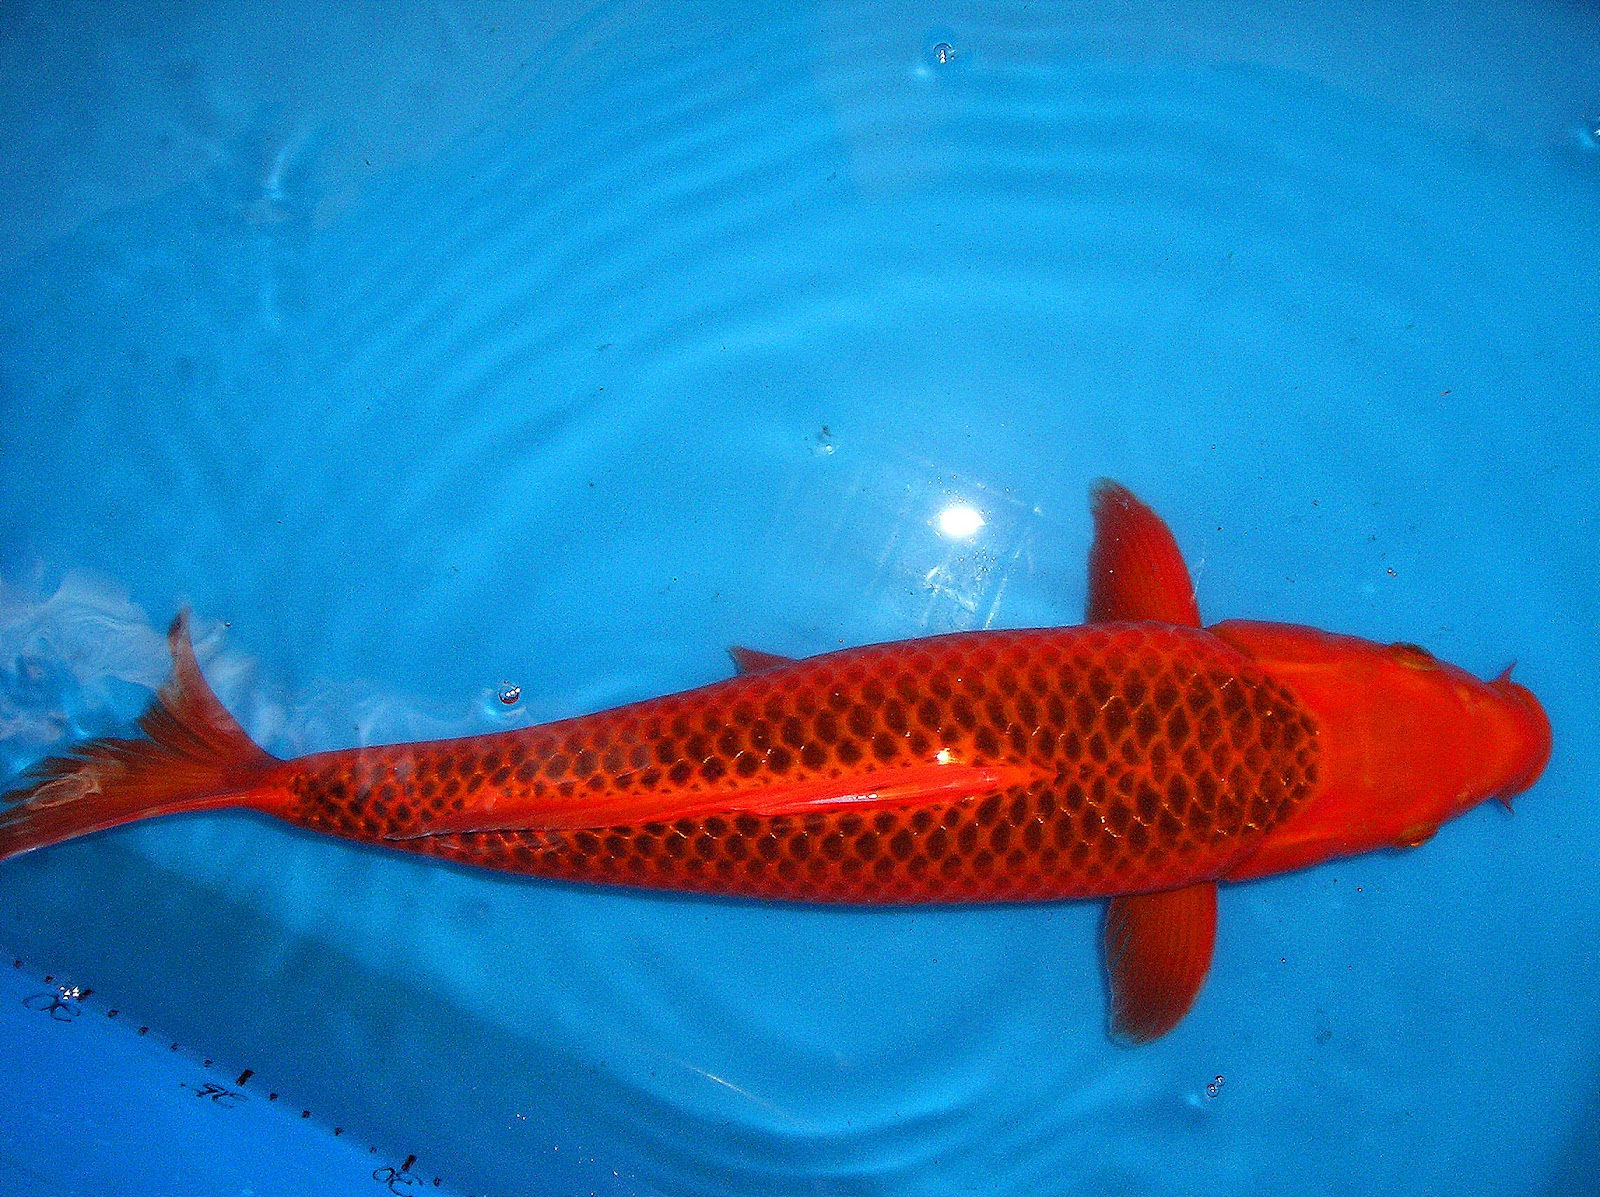 Zenkoi marketing imported japanese carp koi fish for Purchase koi fish